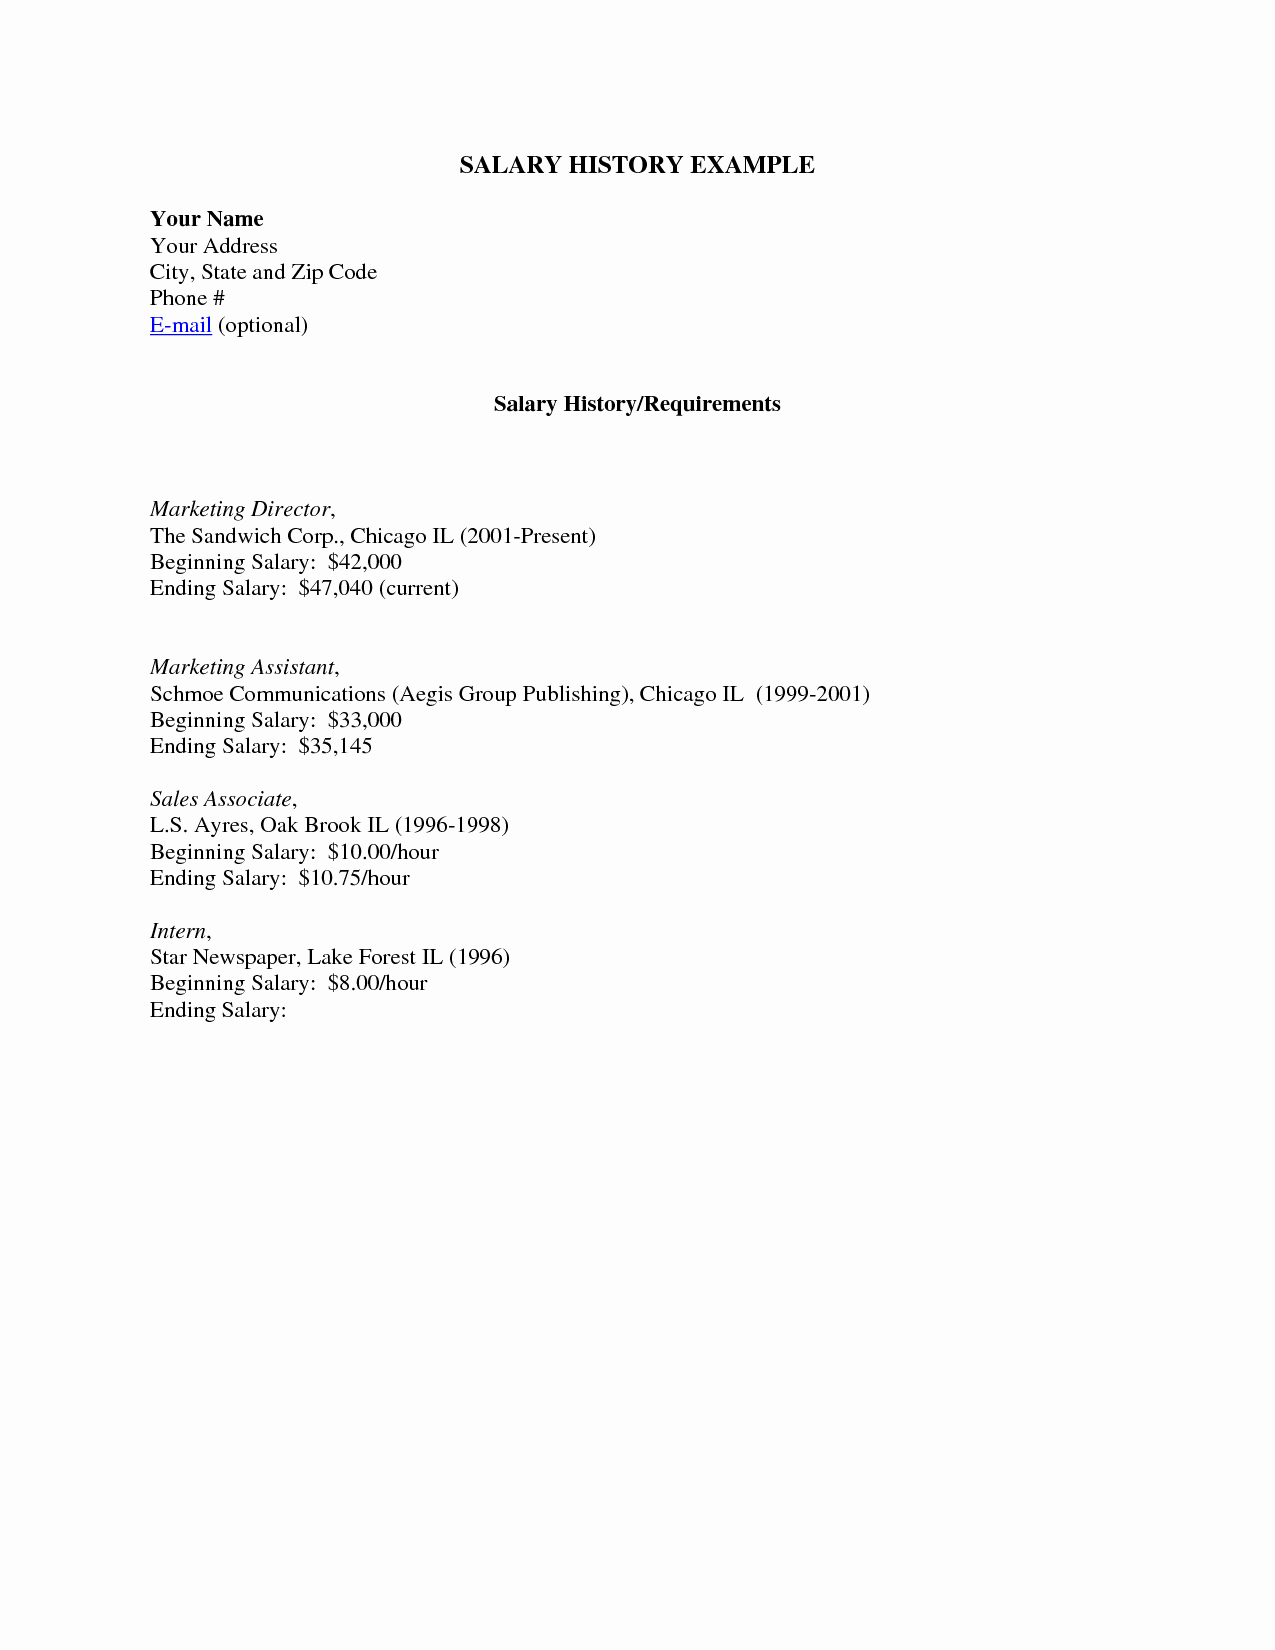 Salary History In Cover Letter New Cover Letter with Salary History and Desired